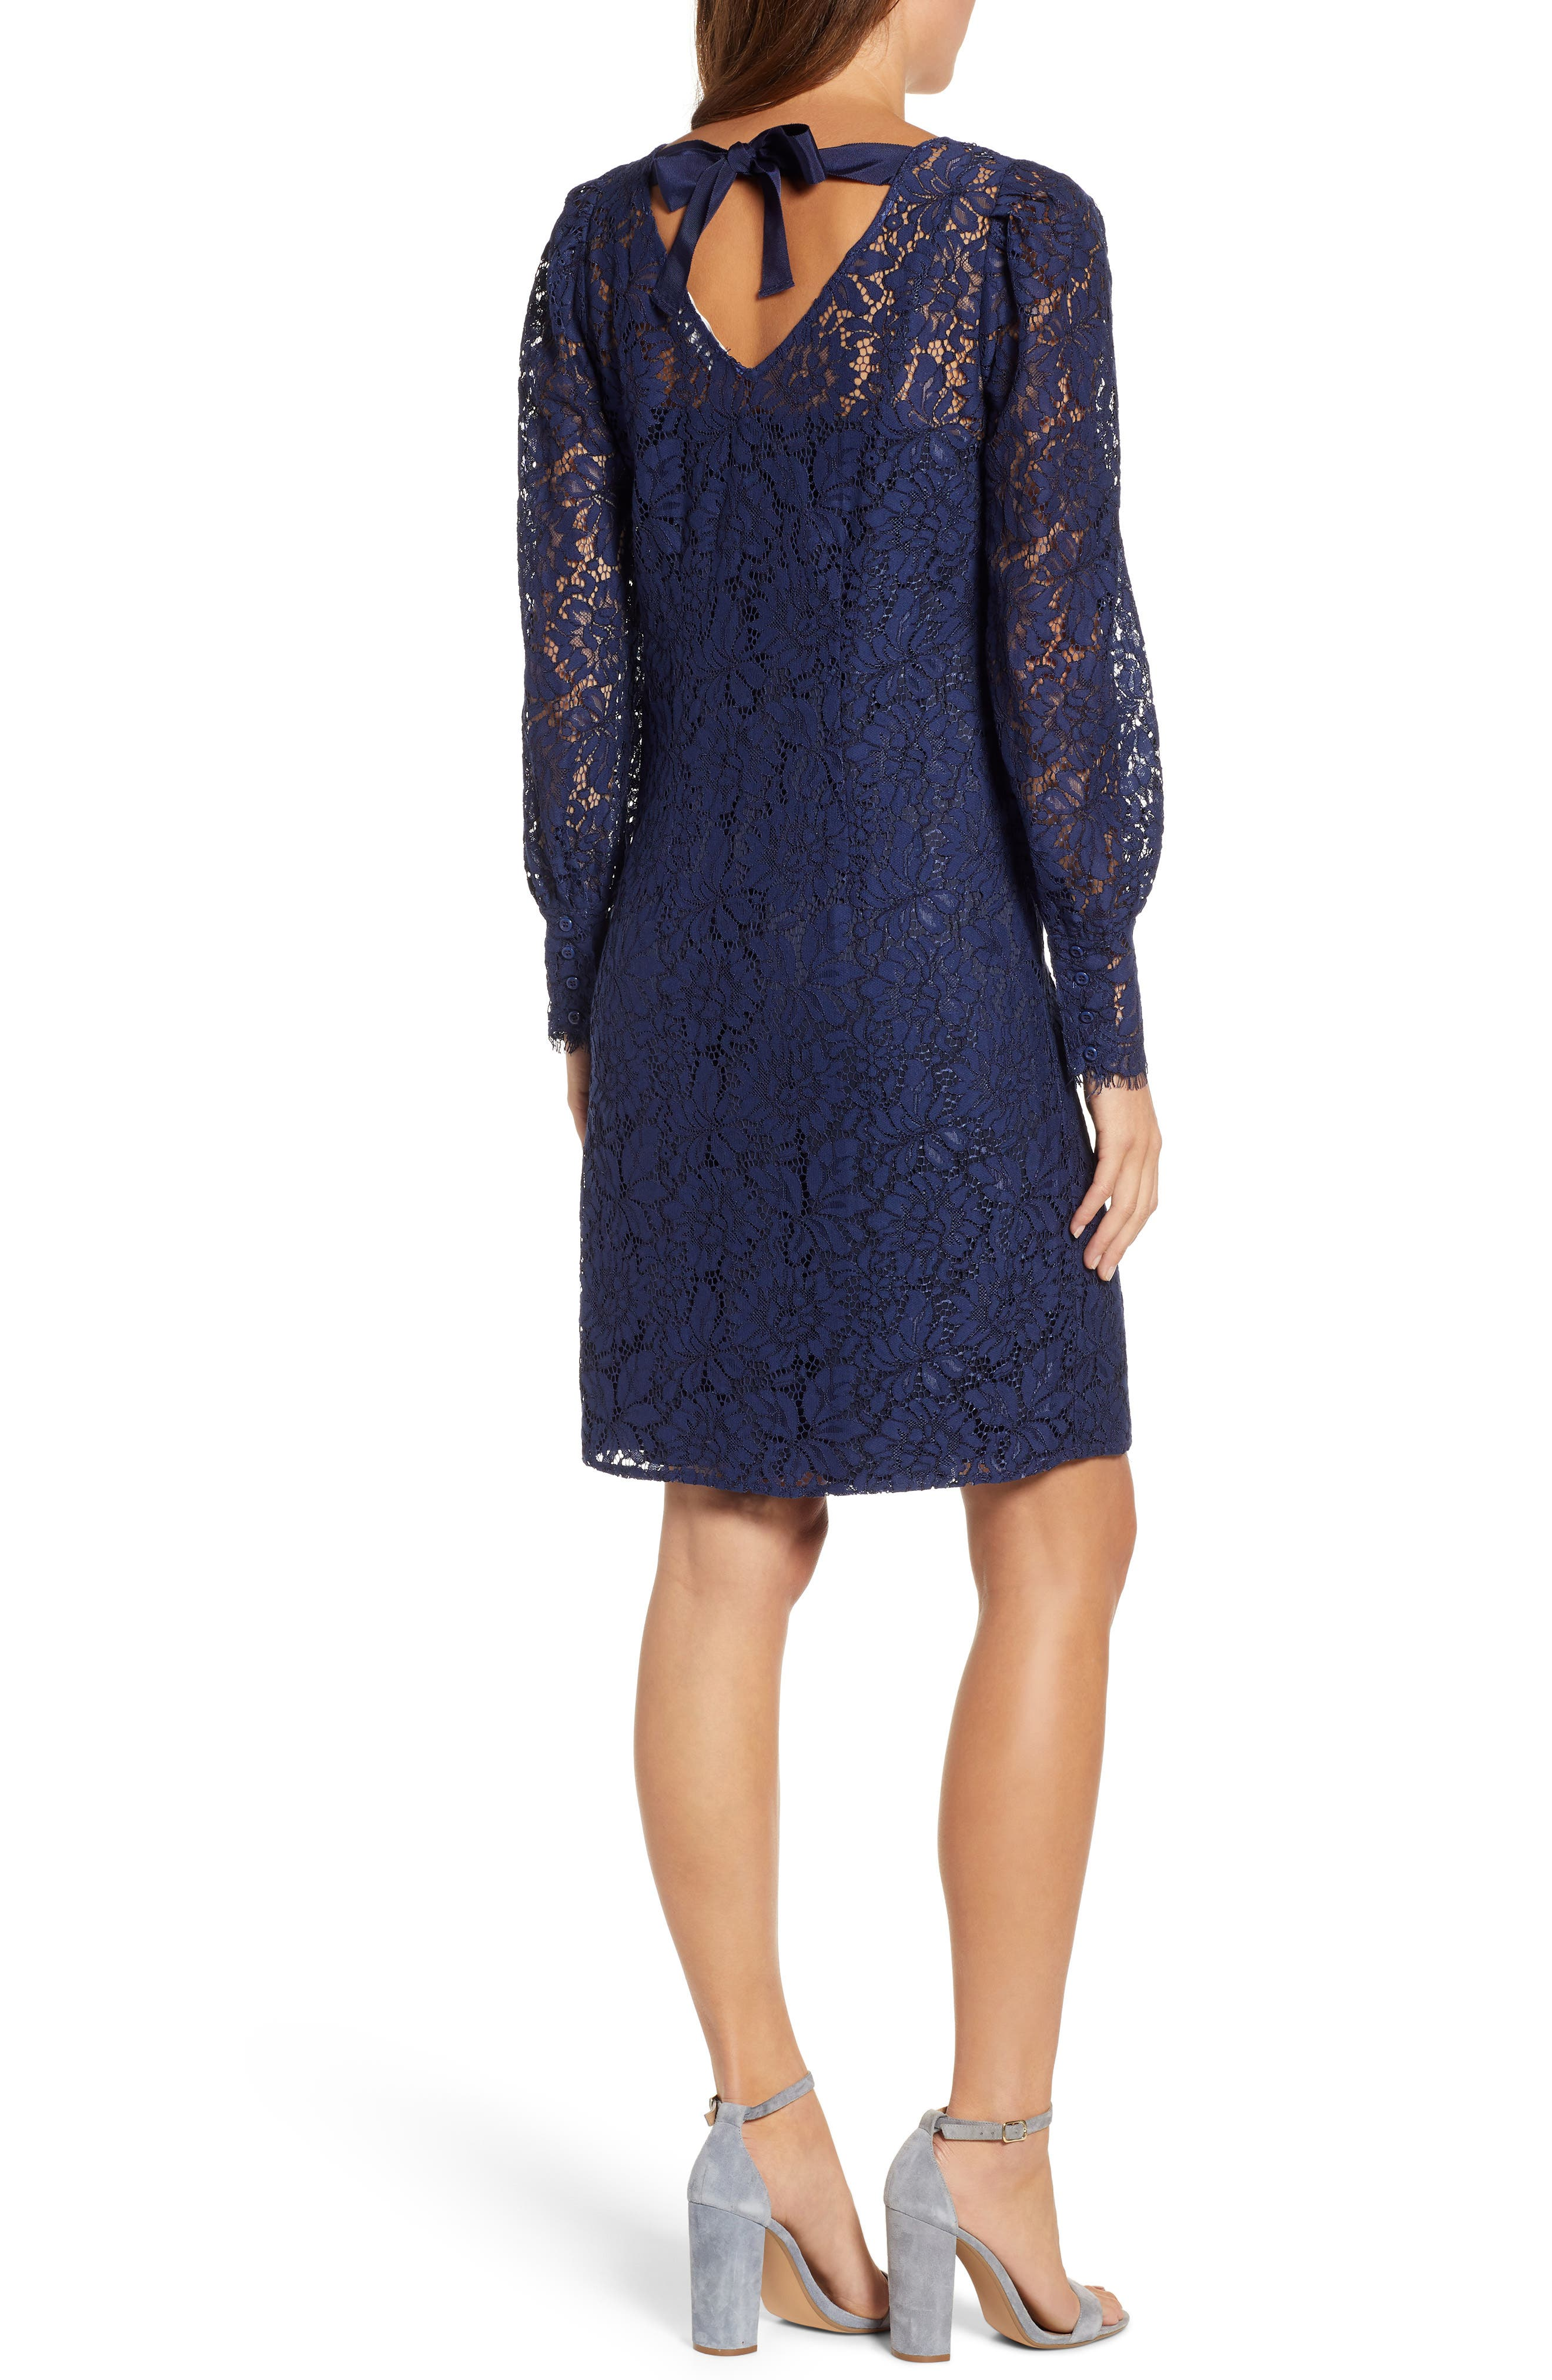 ROSEMUNDE, Tie Back Lace Dress, Alternate thumbnail 2, color, NAVY PEONY